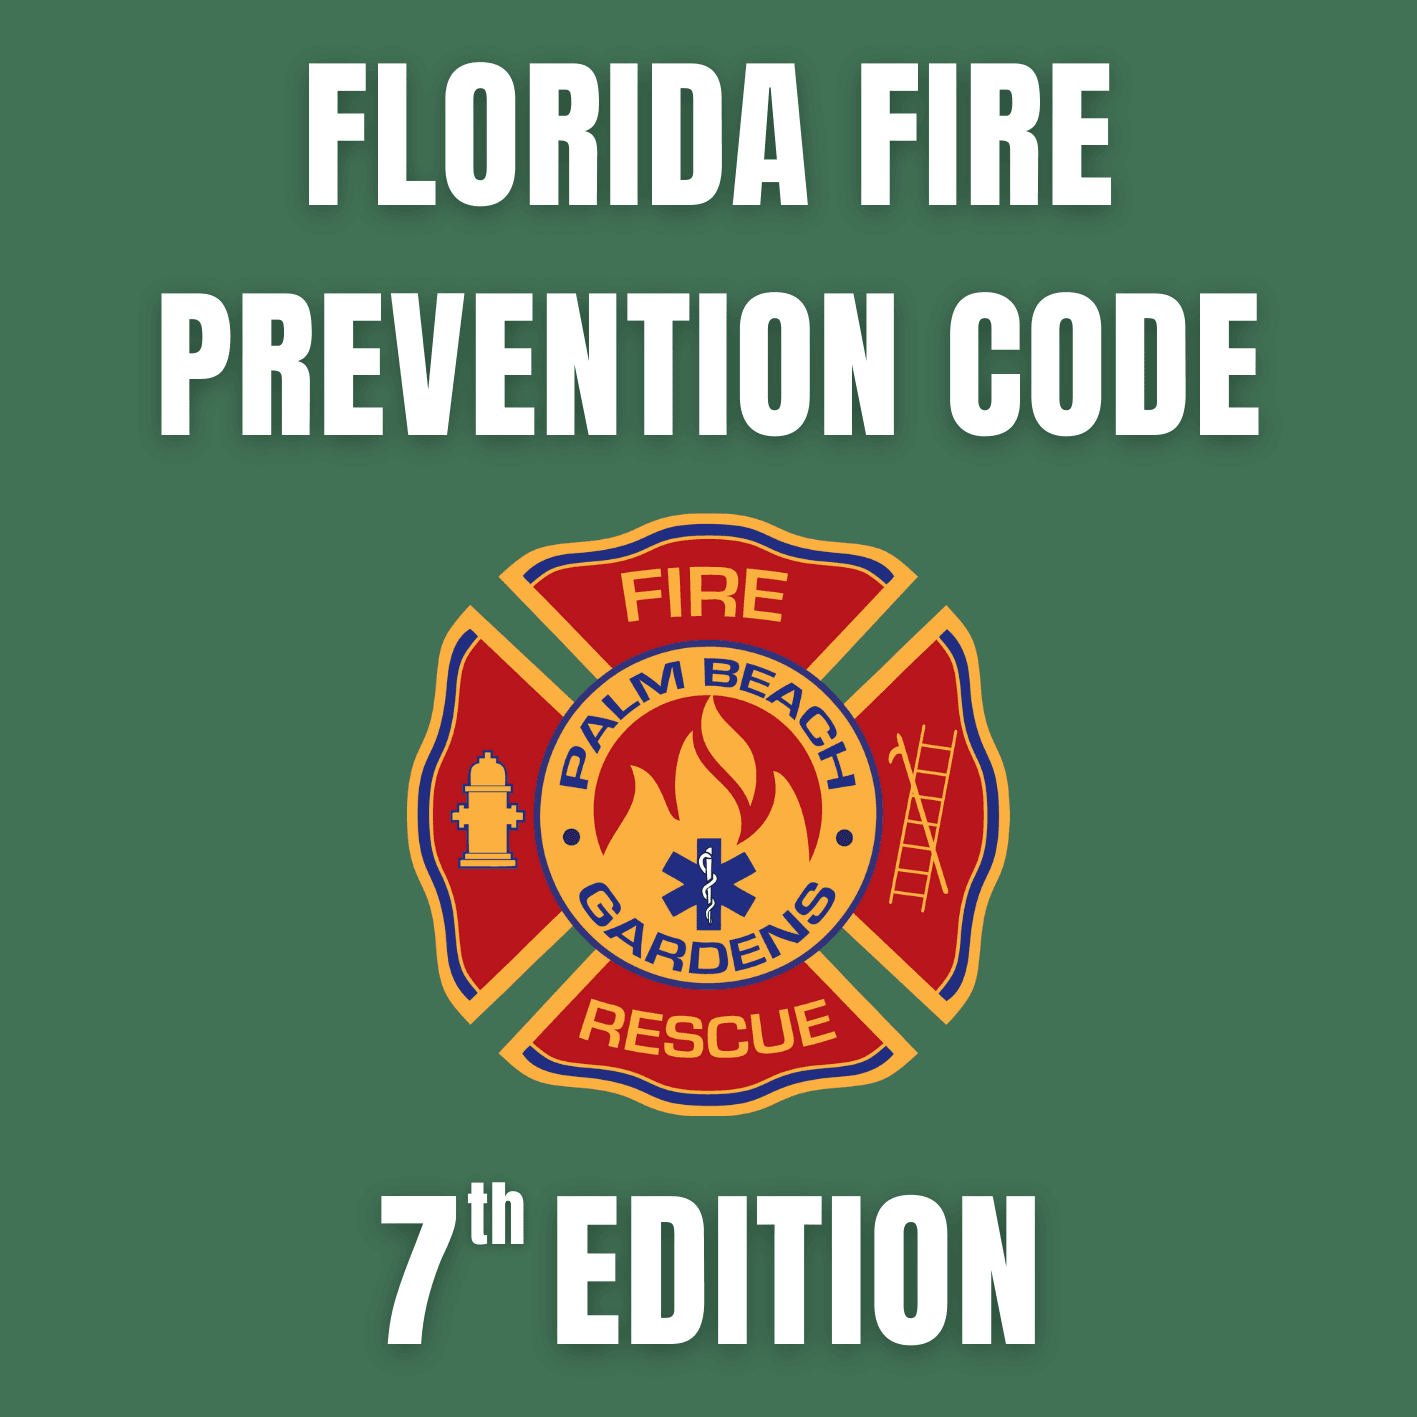 Palm Beach Gardens Fire Rescue. Florida Fire Prevention Code. 7th edition.